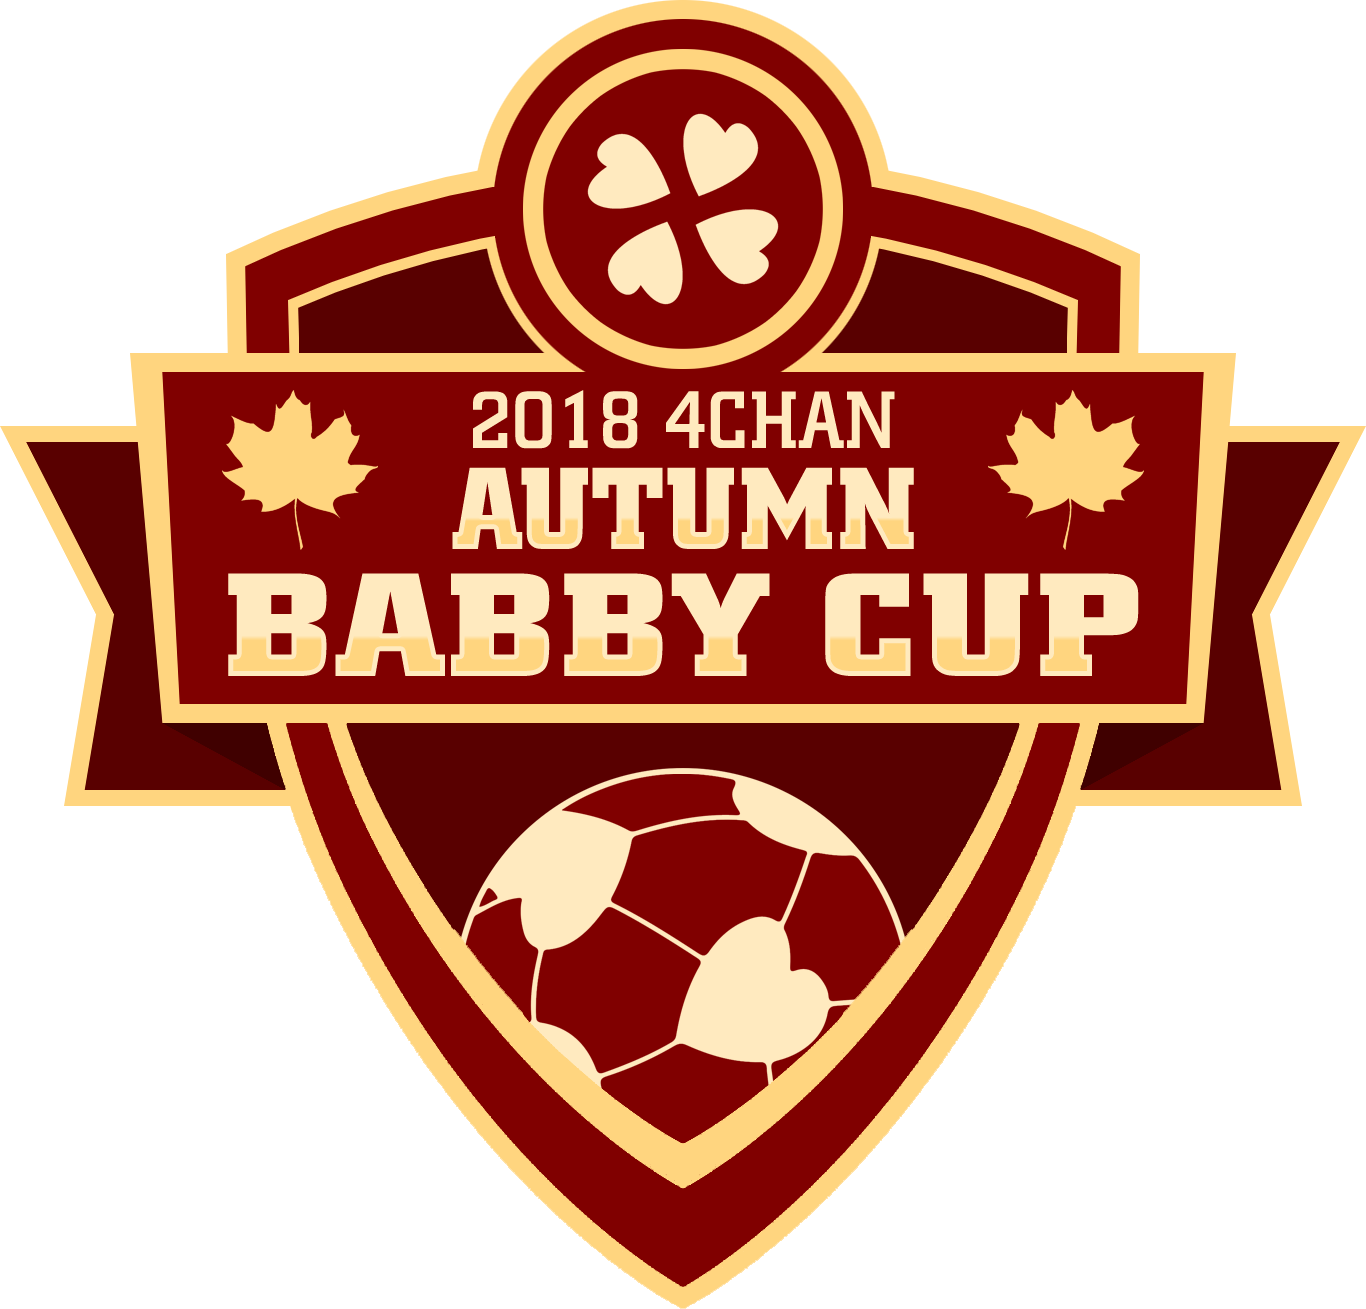 2018 4chan Autumn Babby Cup